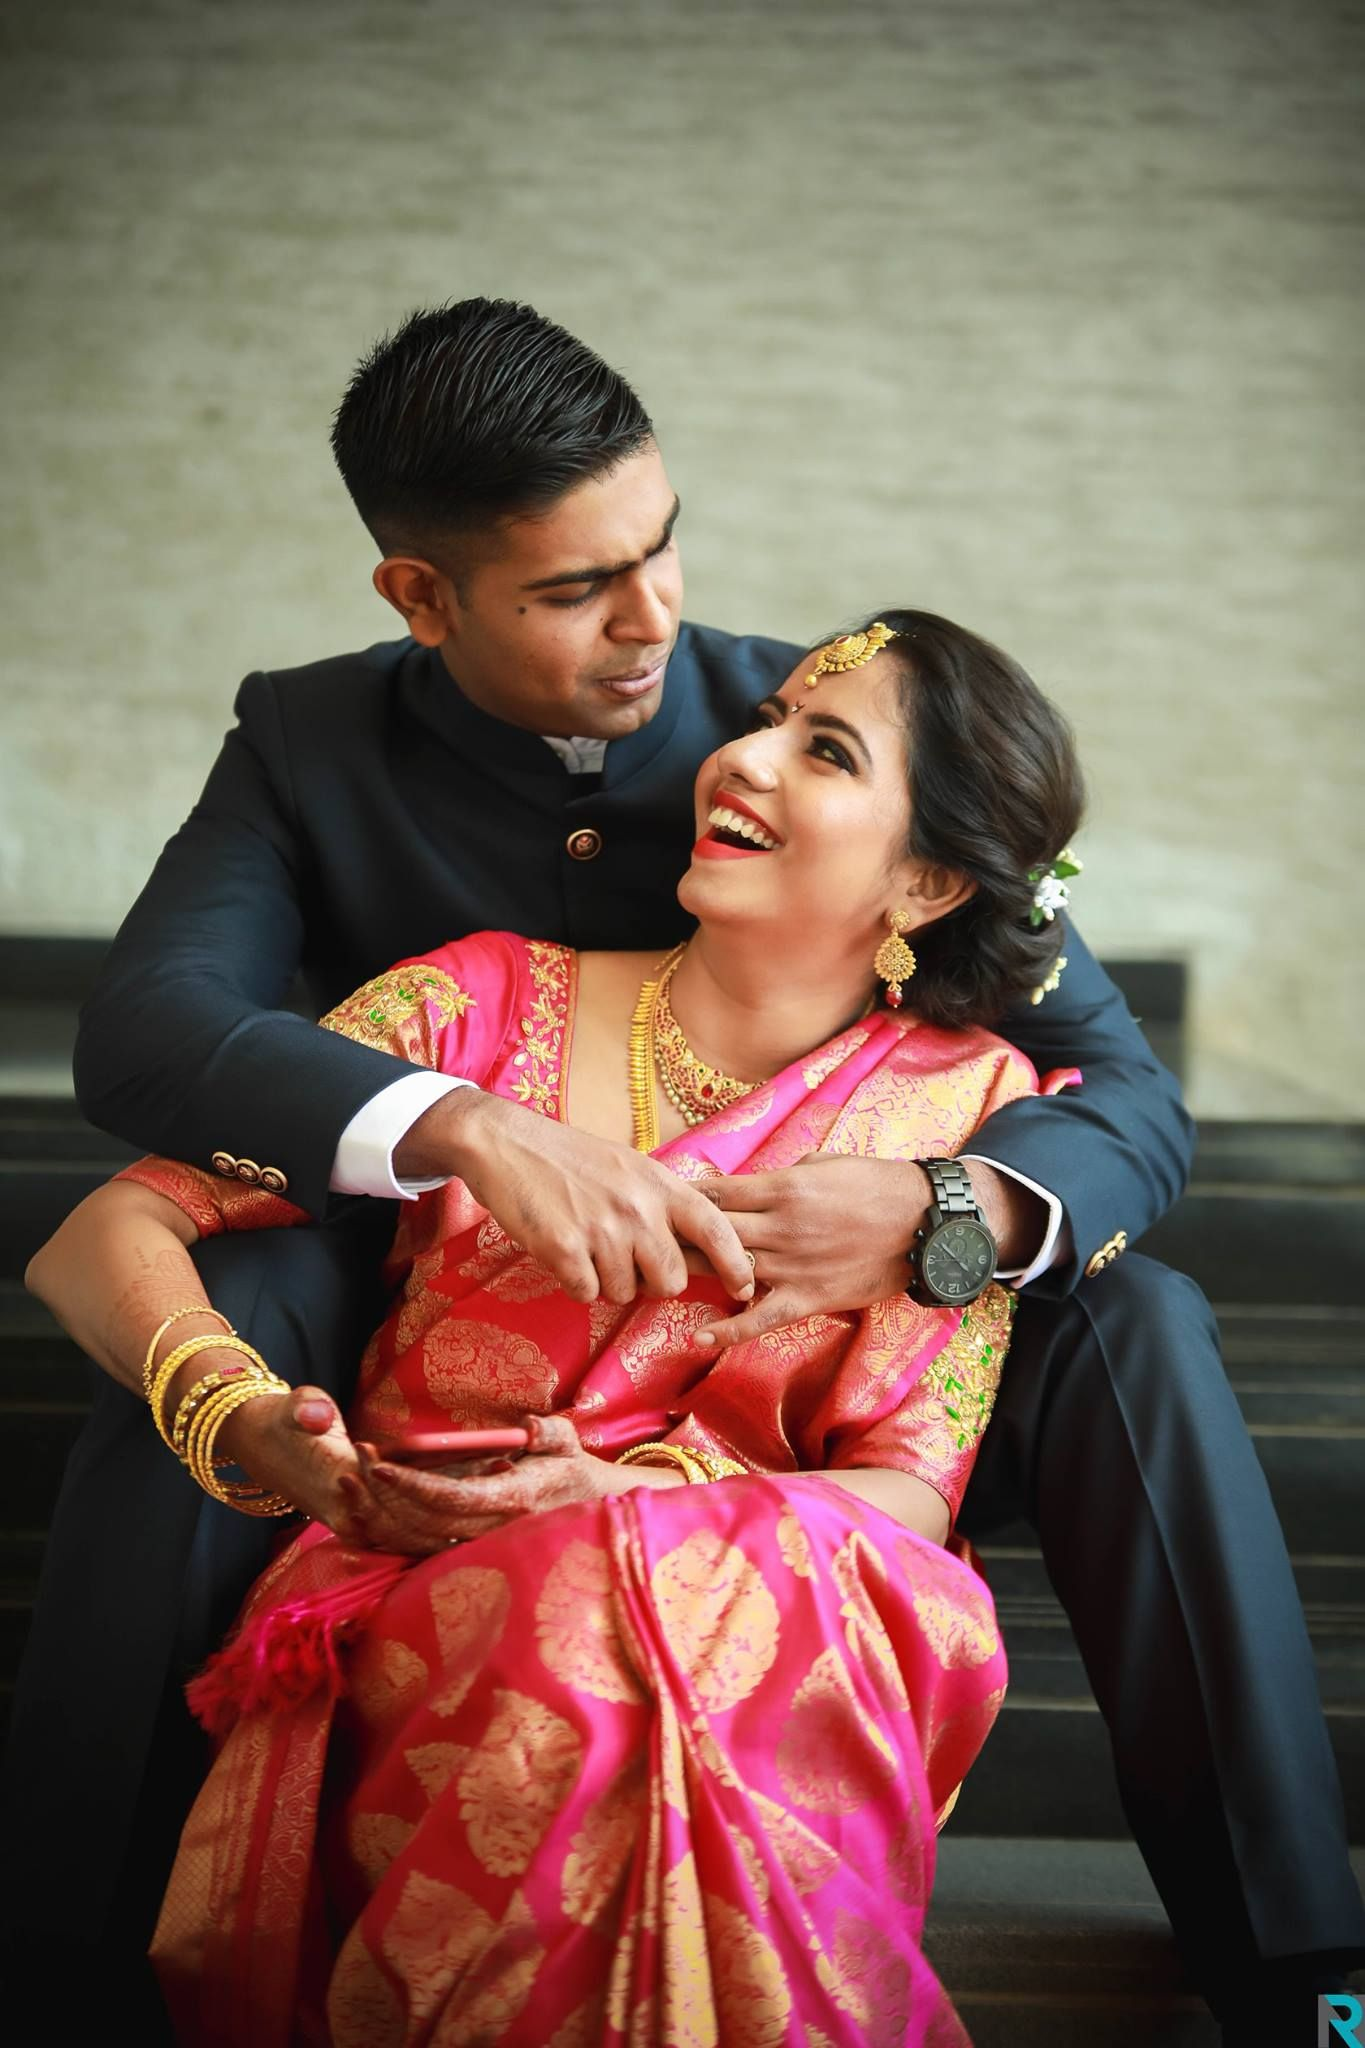 My work media coverage indian engagement photos engagement saree indian wedding photos